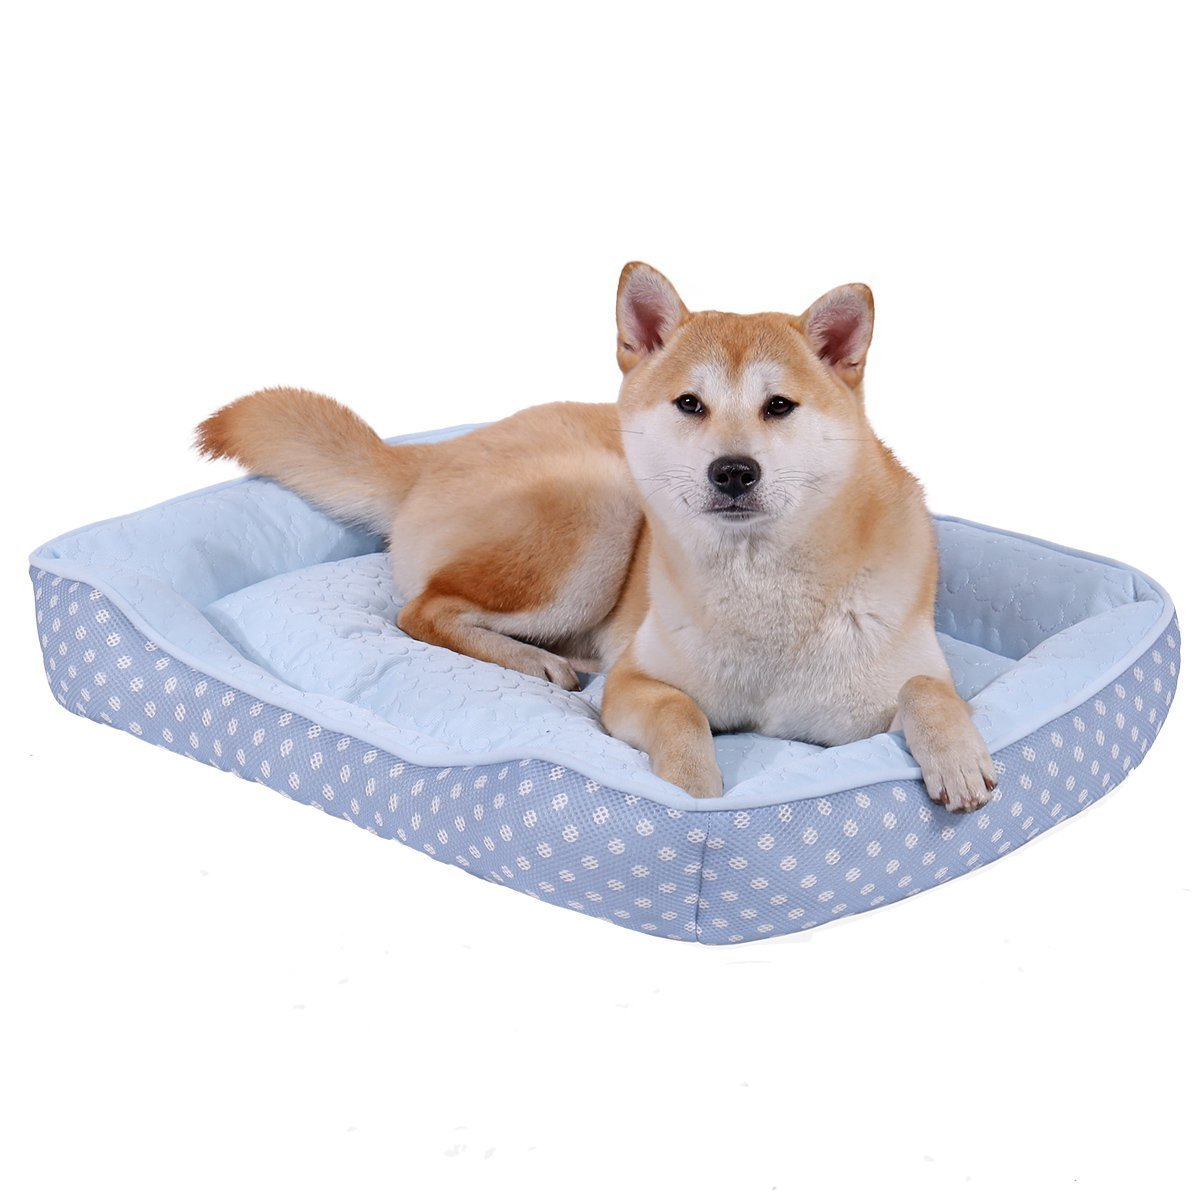 Ultra Soft Pet Sofa Beds for Small Medium Large Dogs and Cats 29.5 L x 23.2 W x 5.5 H Ohana Self Cooling Dog Bed Cuddler with Non-Slip and Waterproof Bottom Great for Summer Pink M